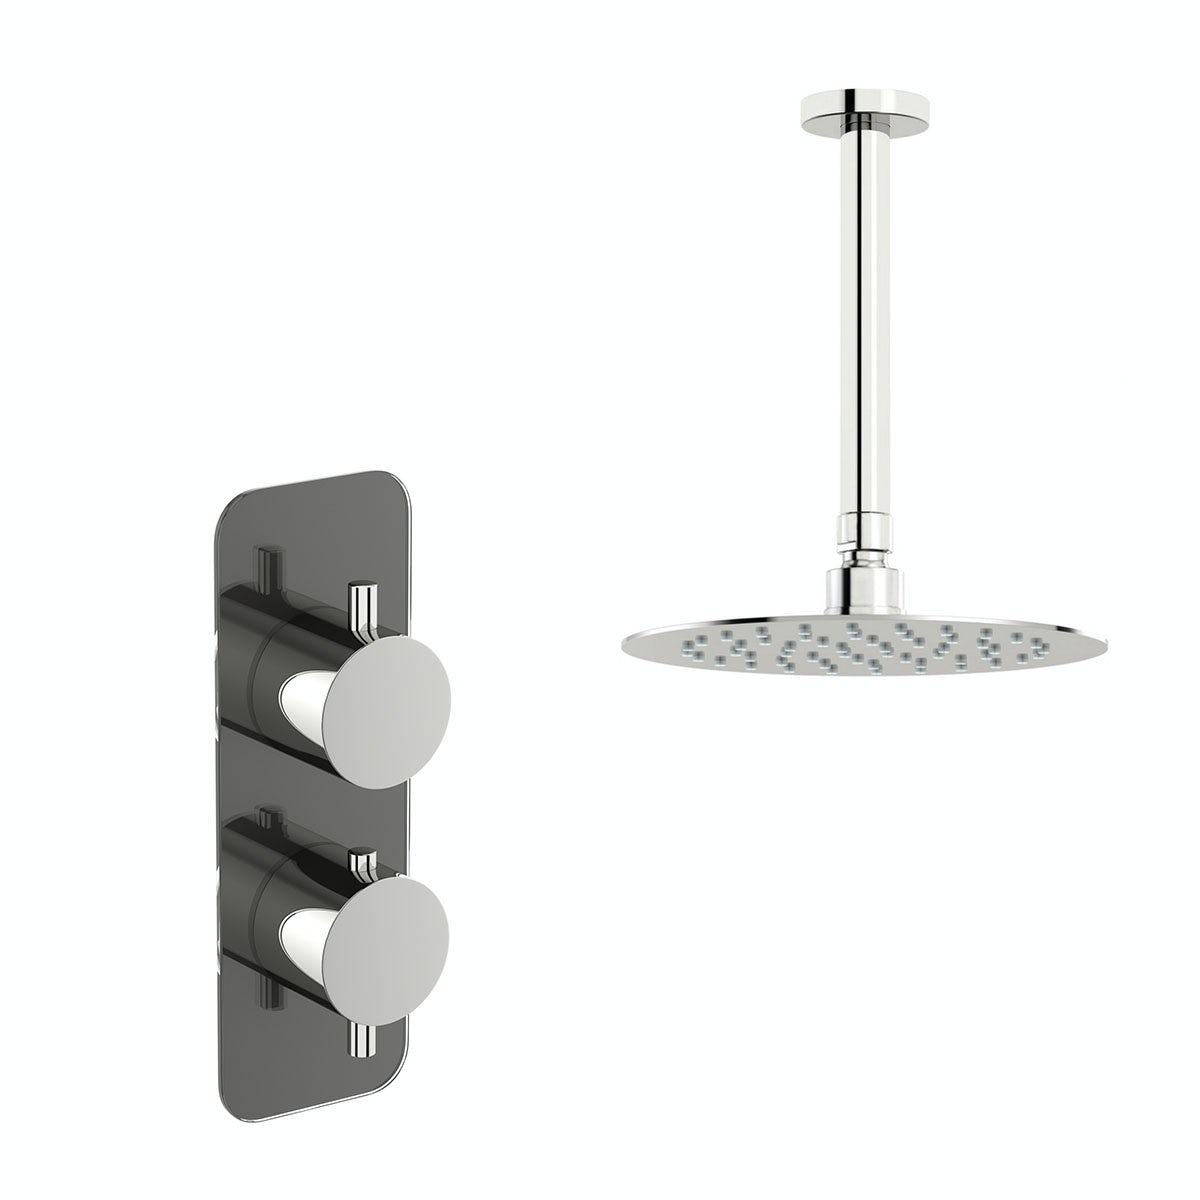 Mode Heath thermostatic shower valve with ceiling shower set